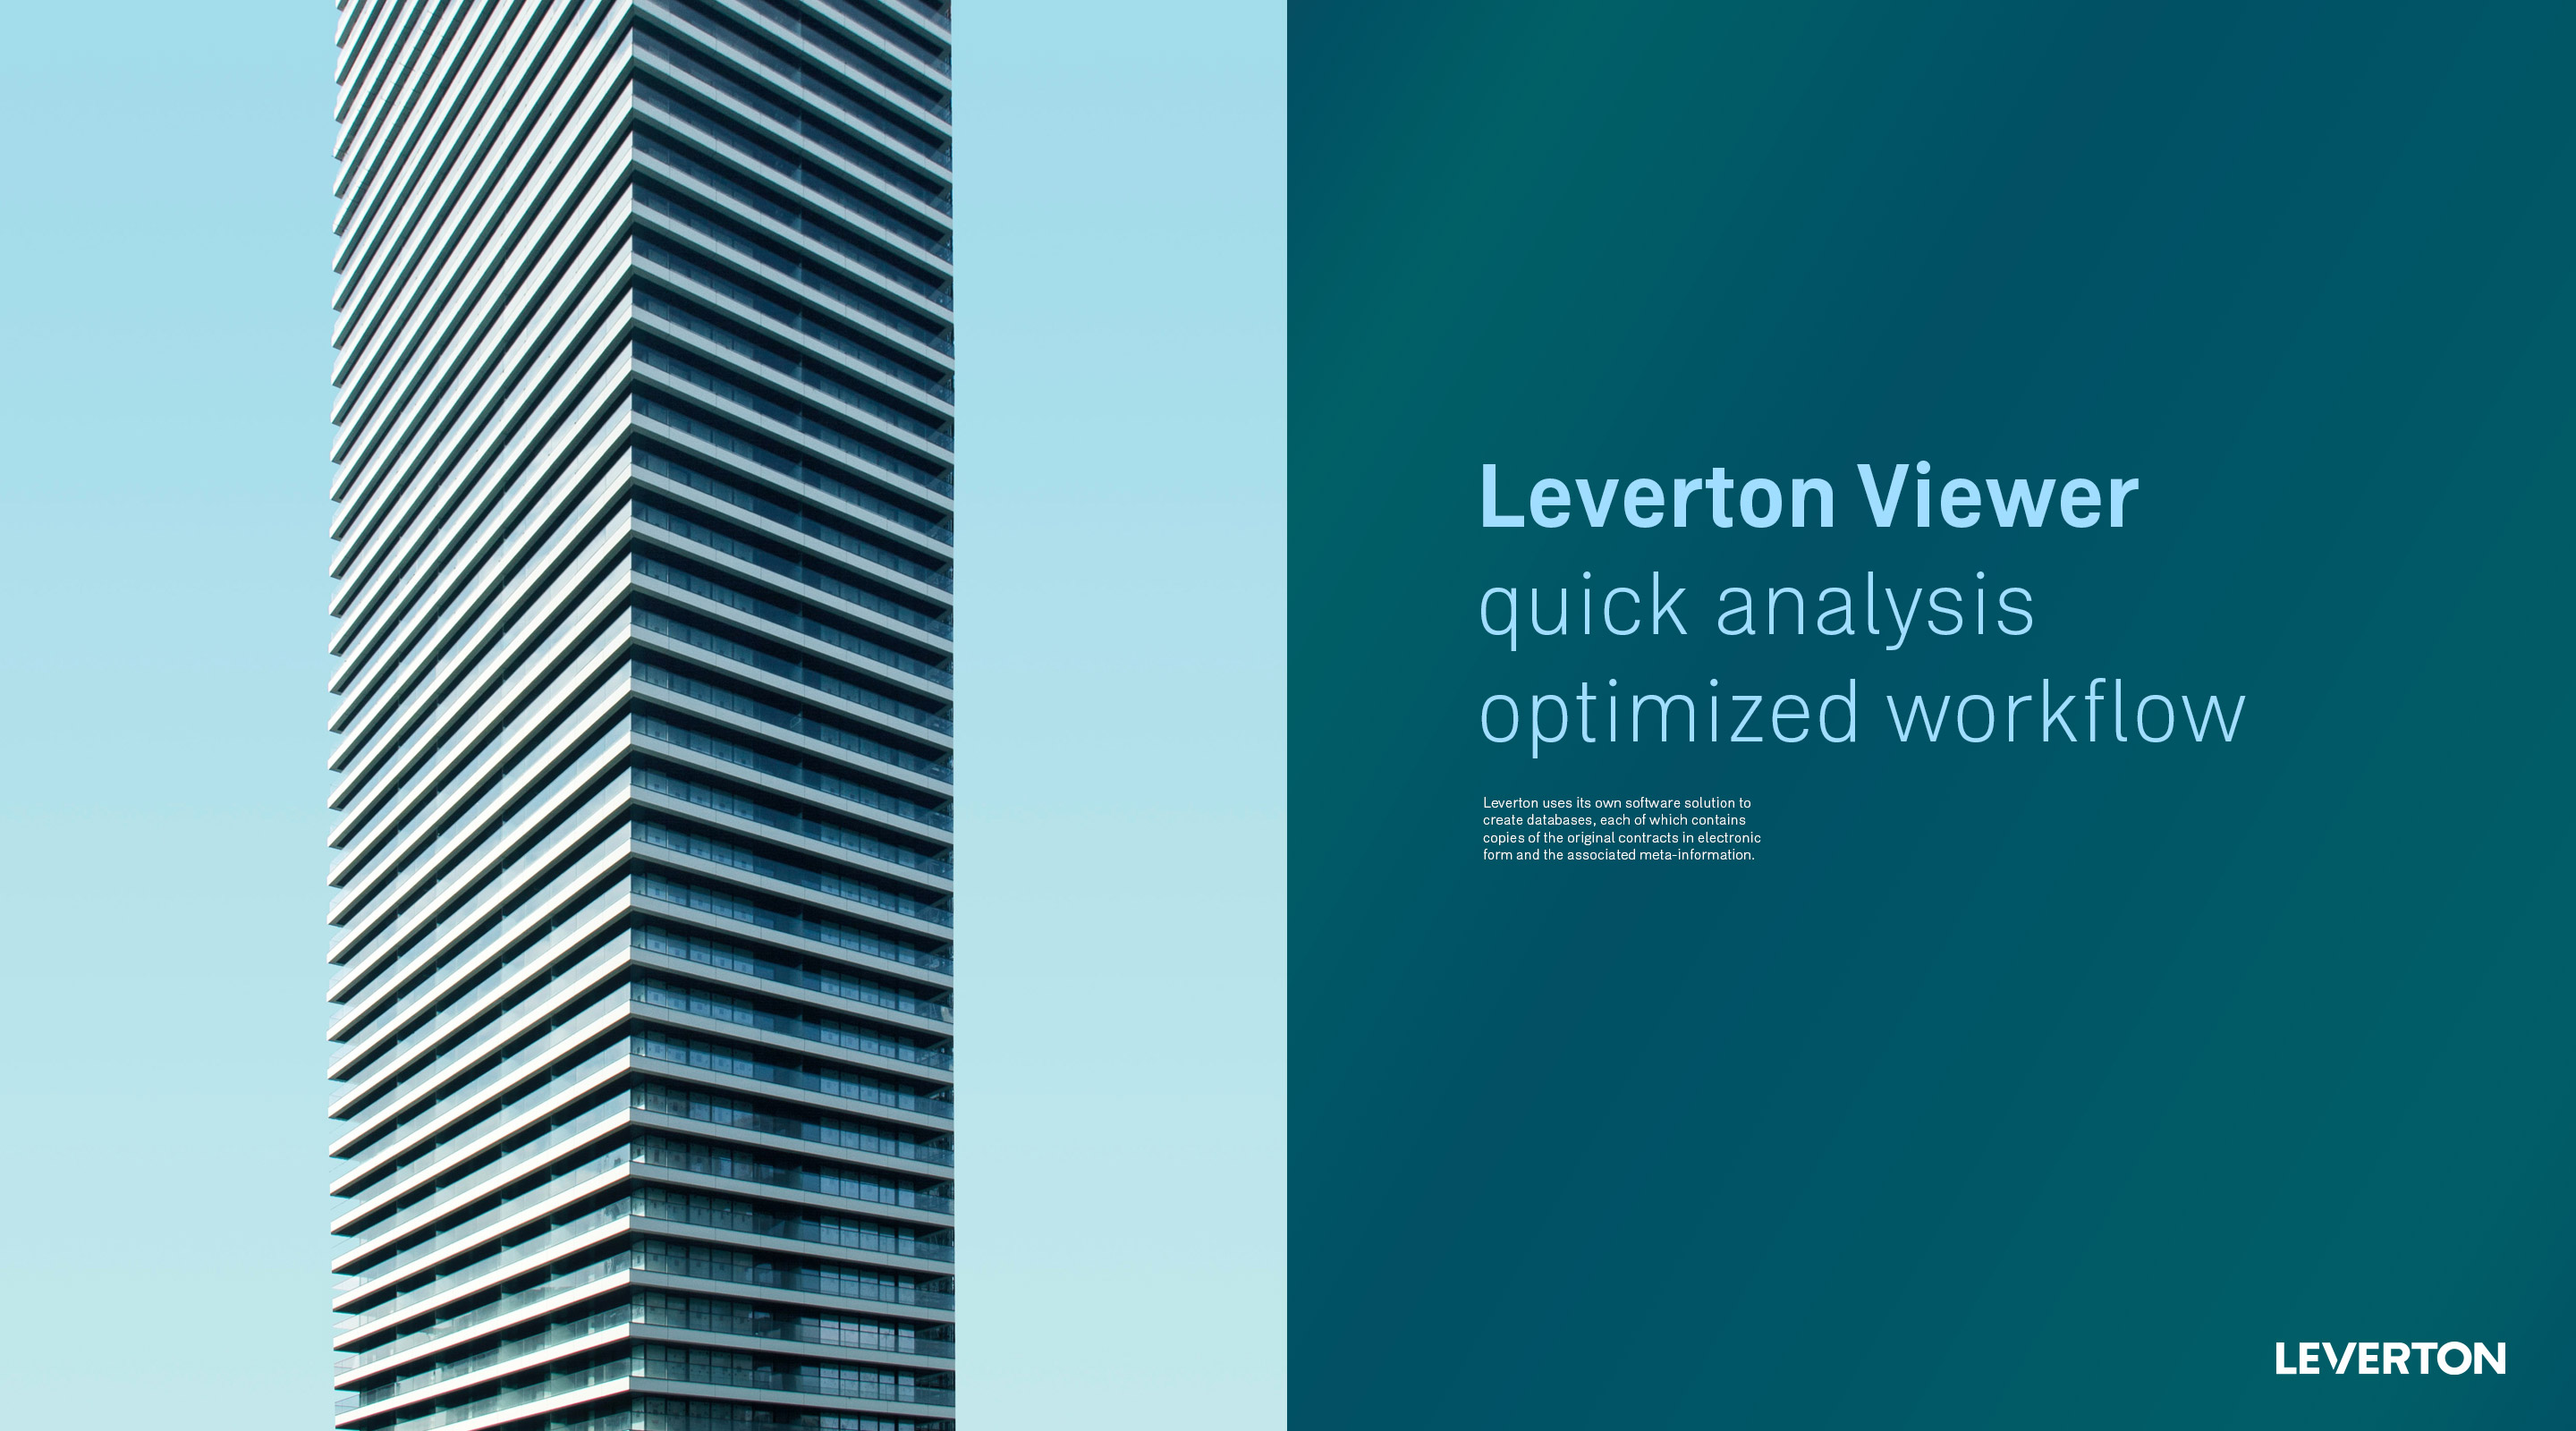 Leverton Corporate Design Look and Feel von Uthmöller und Partner